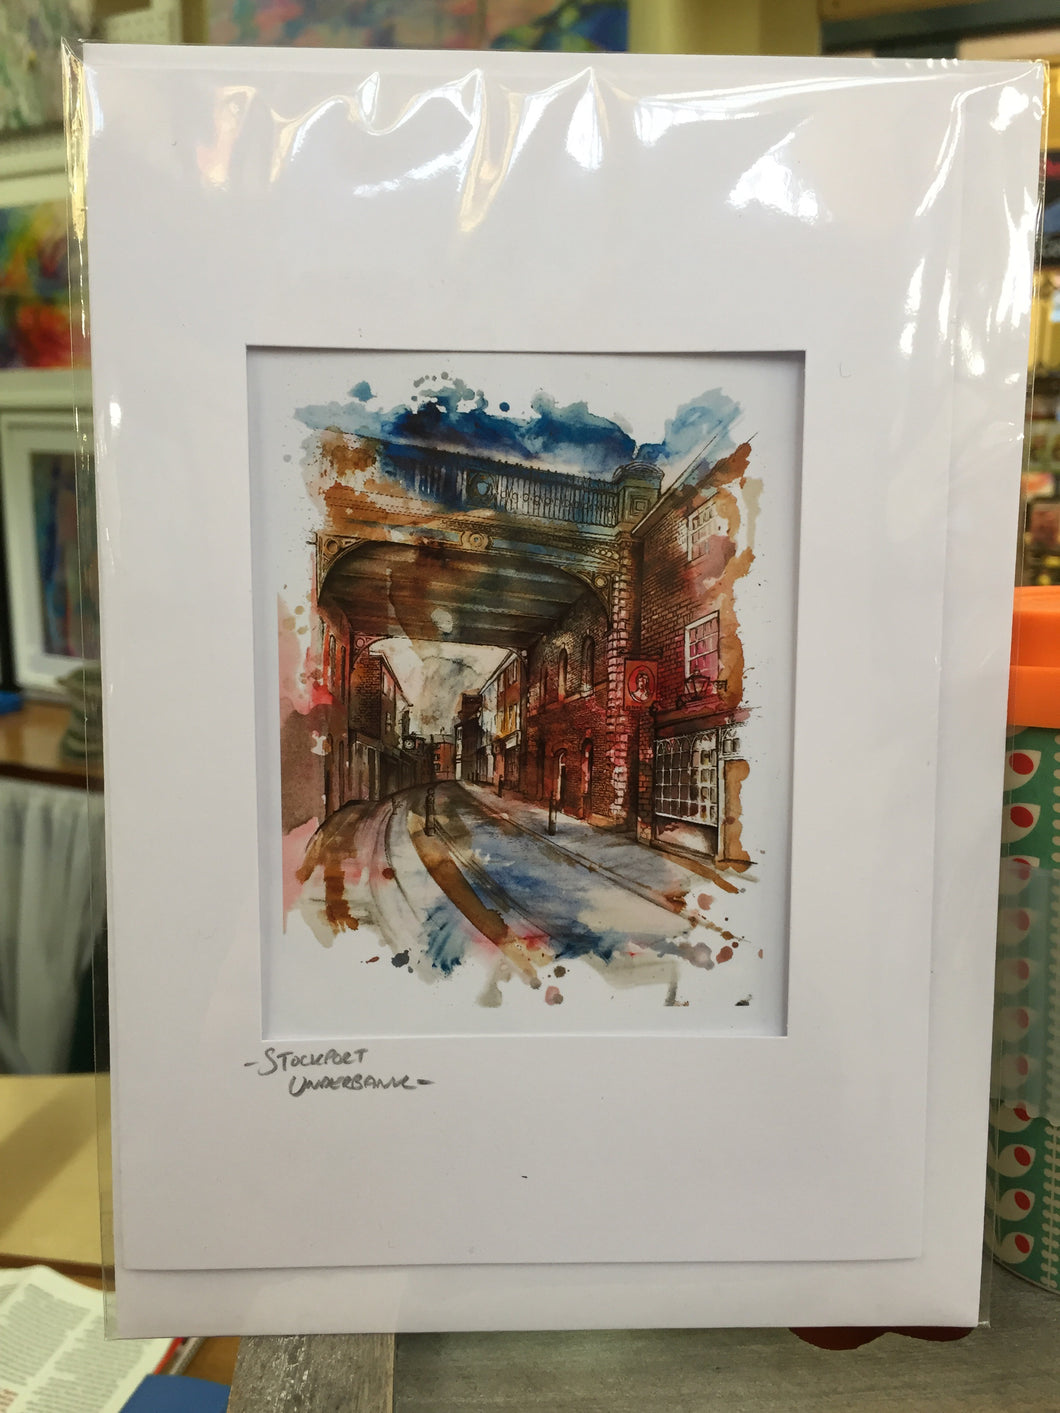 Stockport Underbank Greetings Card